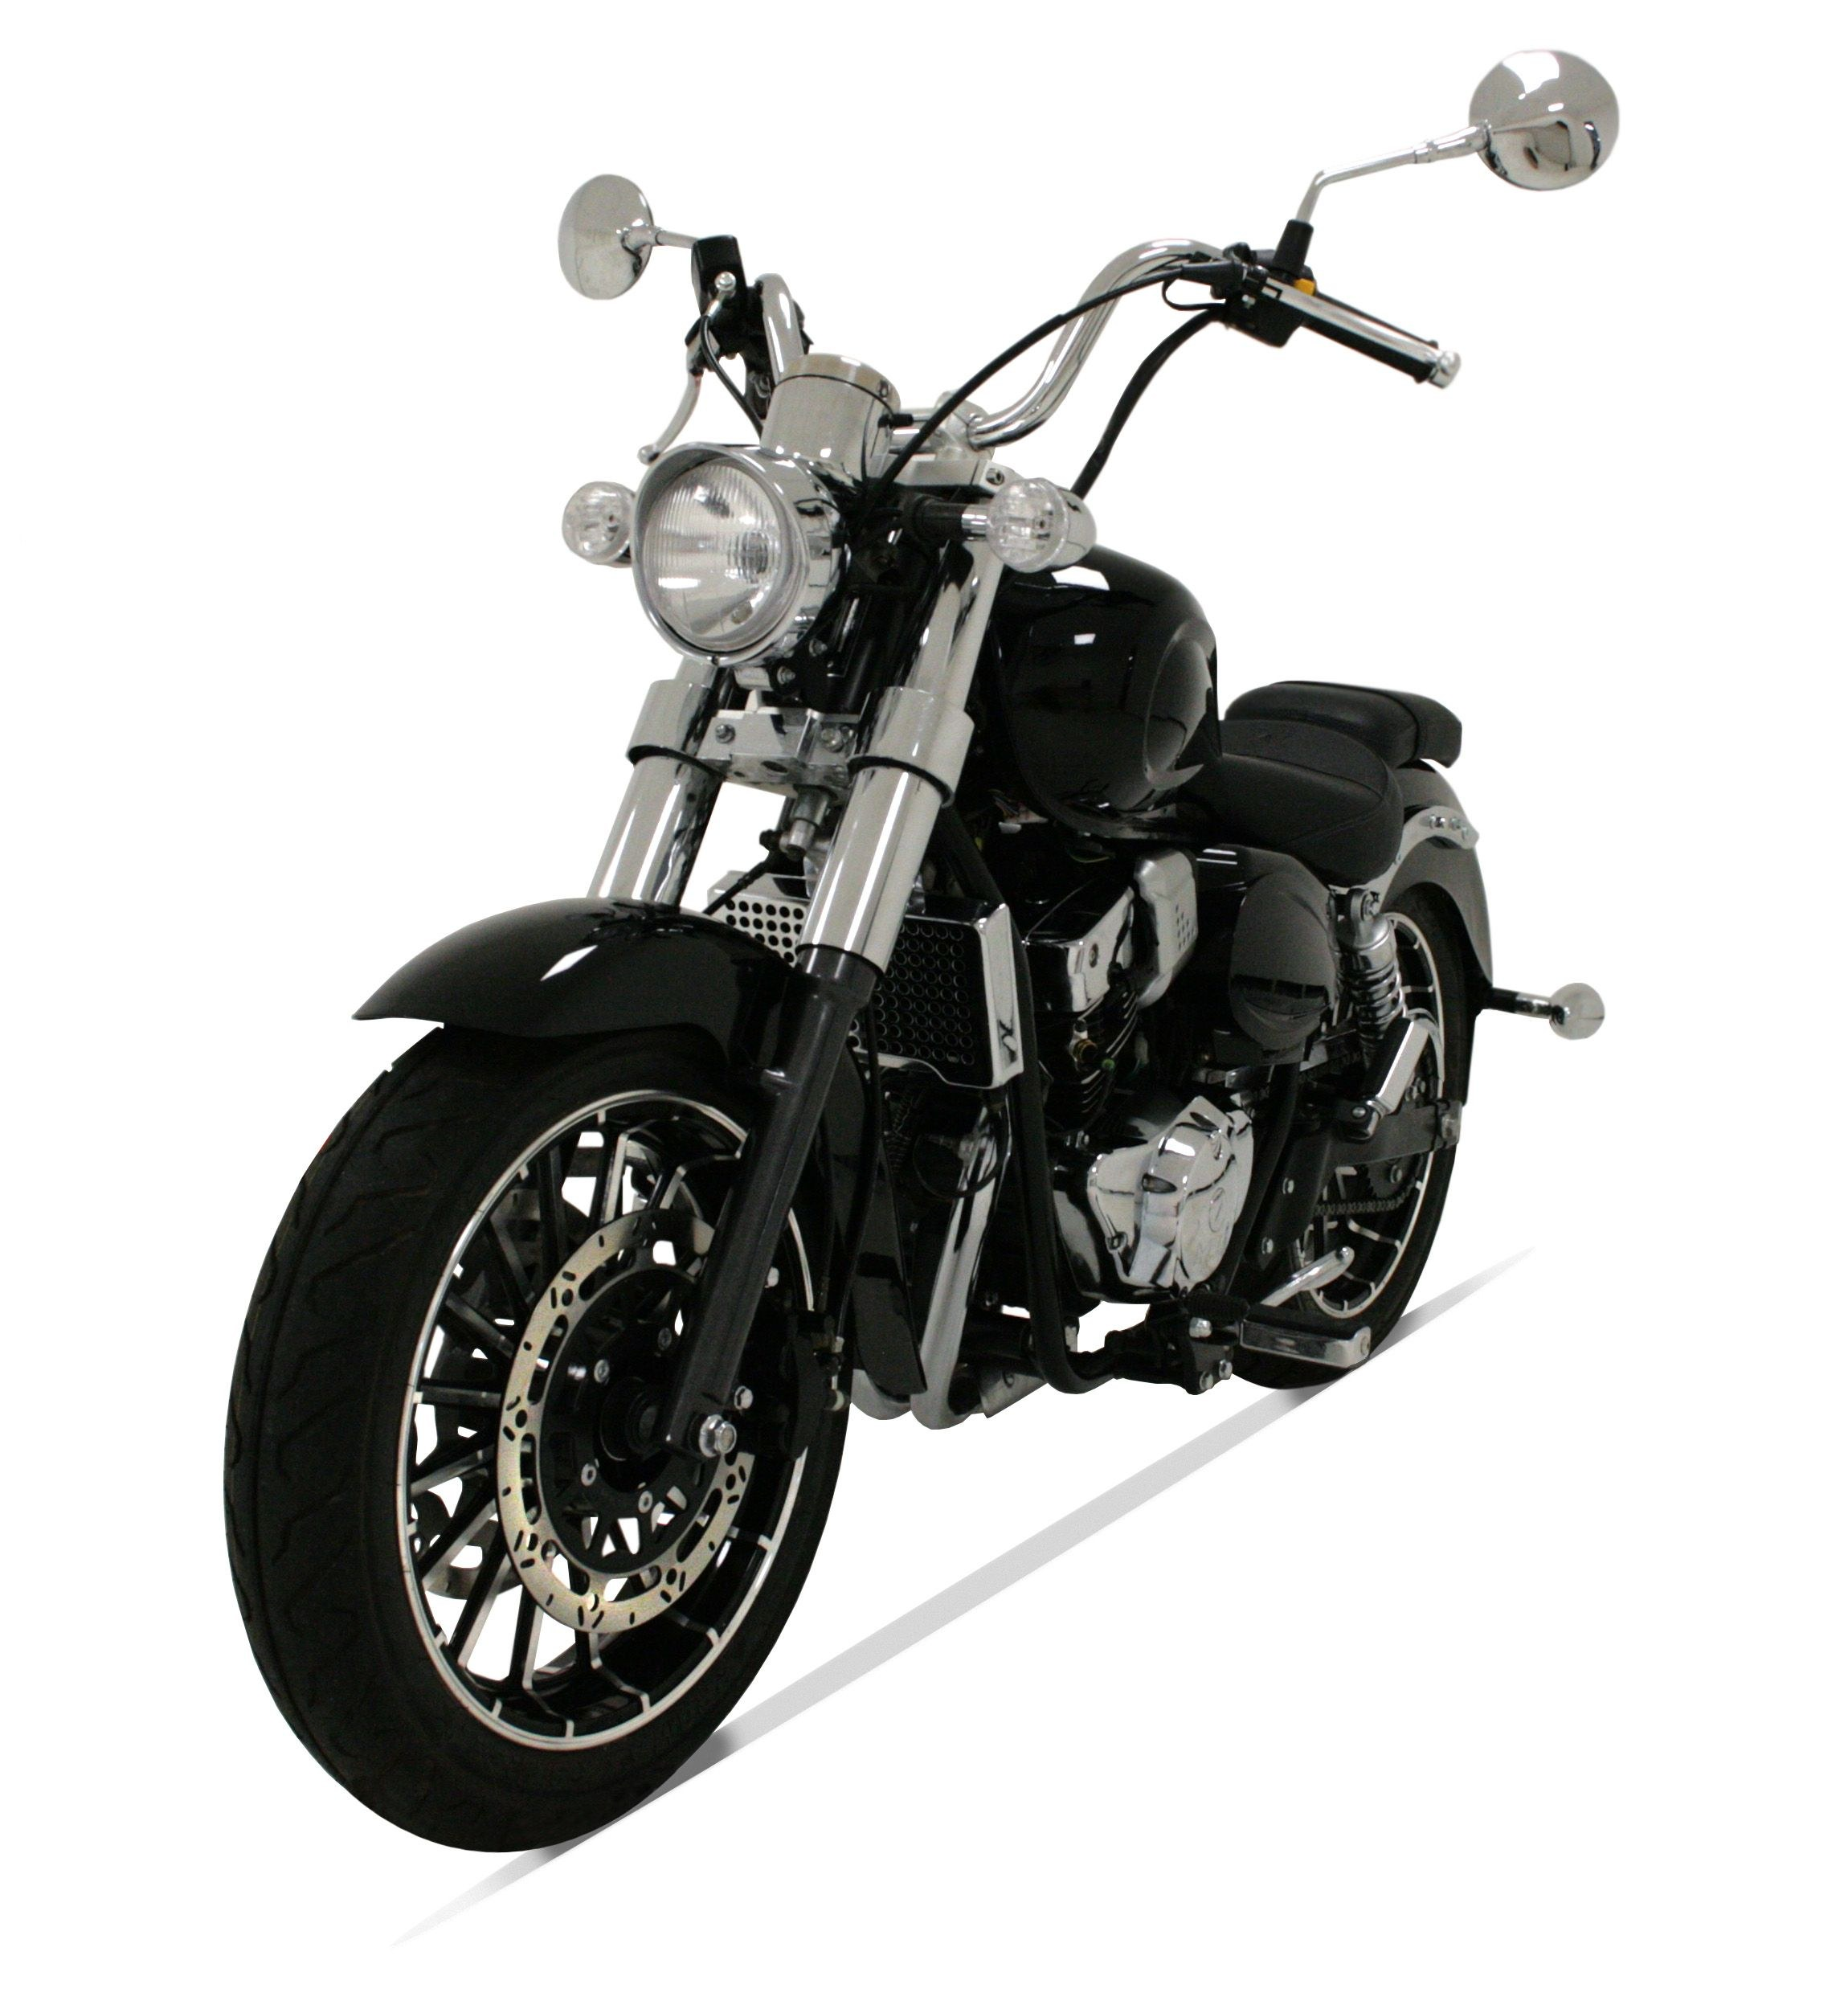 MAG POWER LEGENDERS 125CC